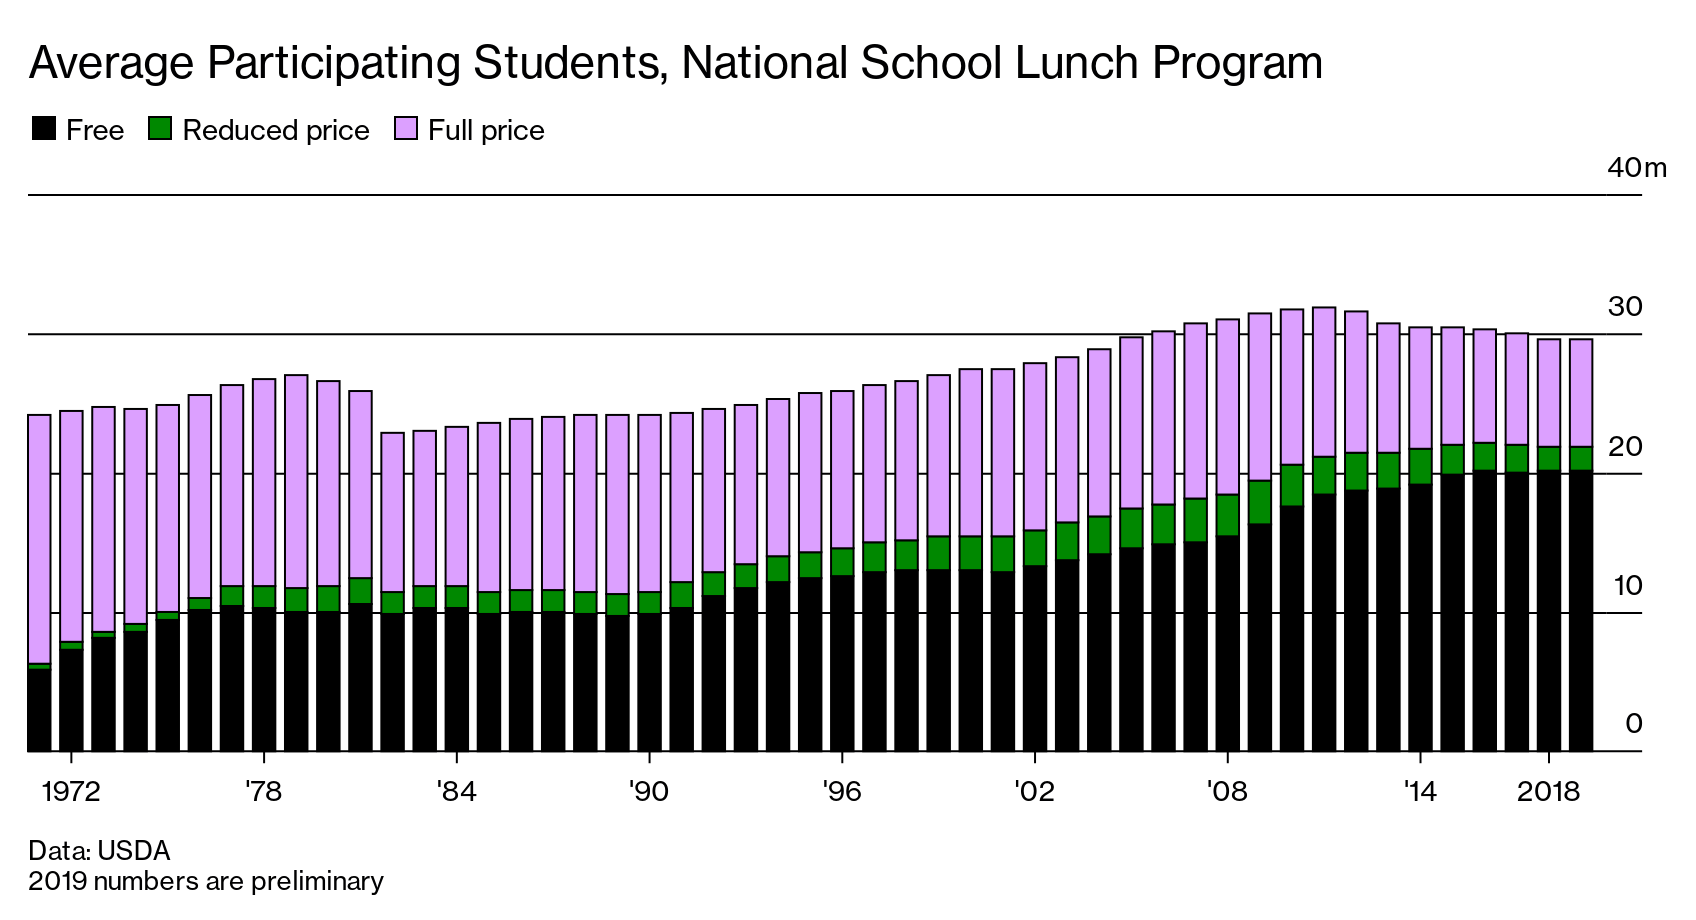 Covid Pandemic: Online Teaching Means Fewer Students Get Free School Meals - Bloomberg